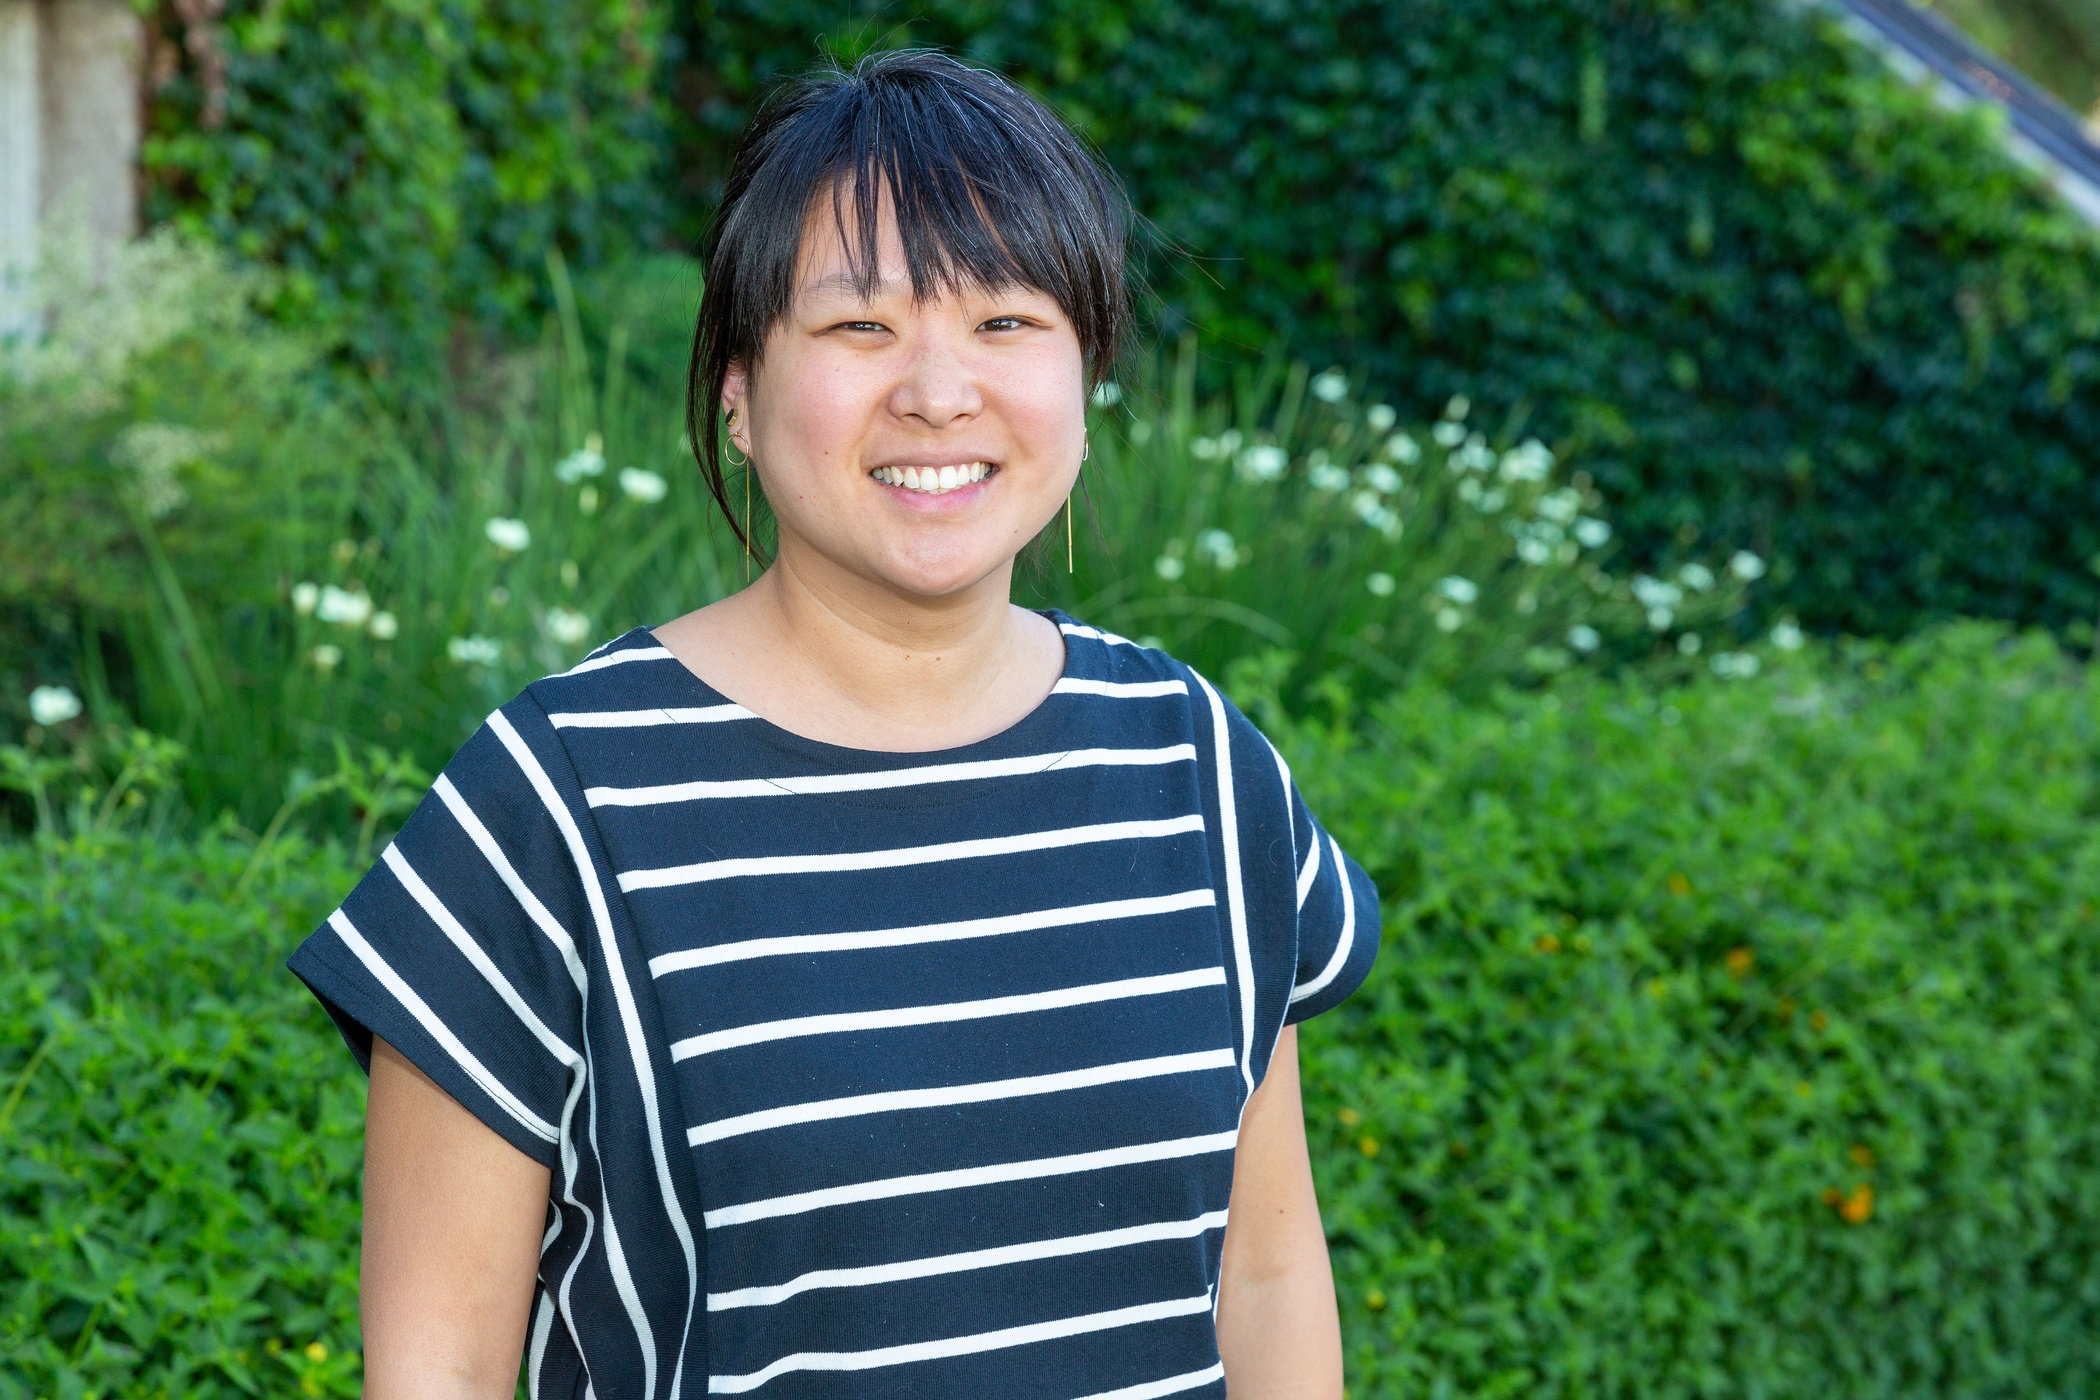 Gail Tang, Professor selected for Fulbright Scholar Program